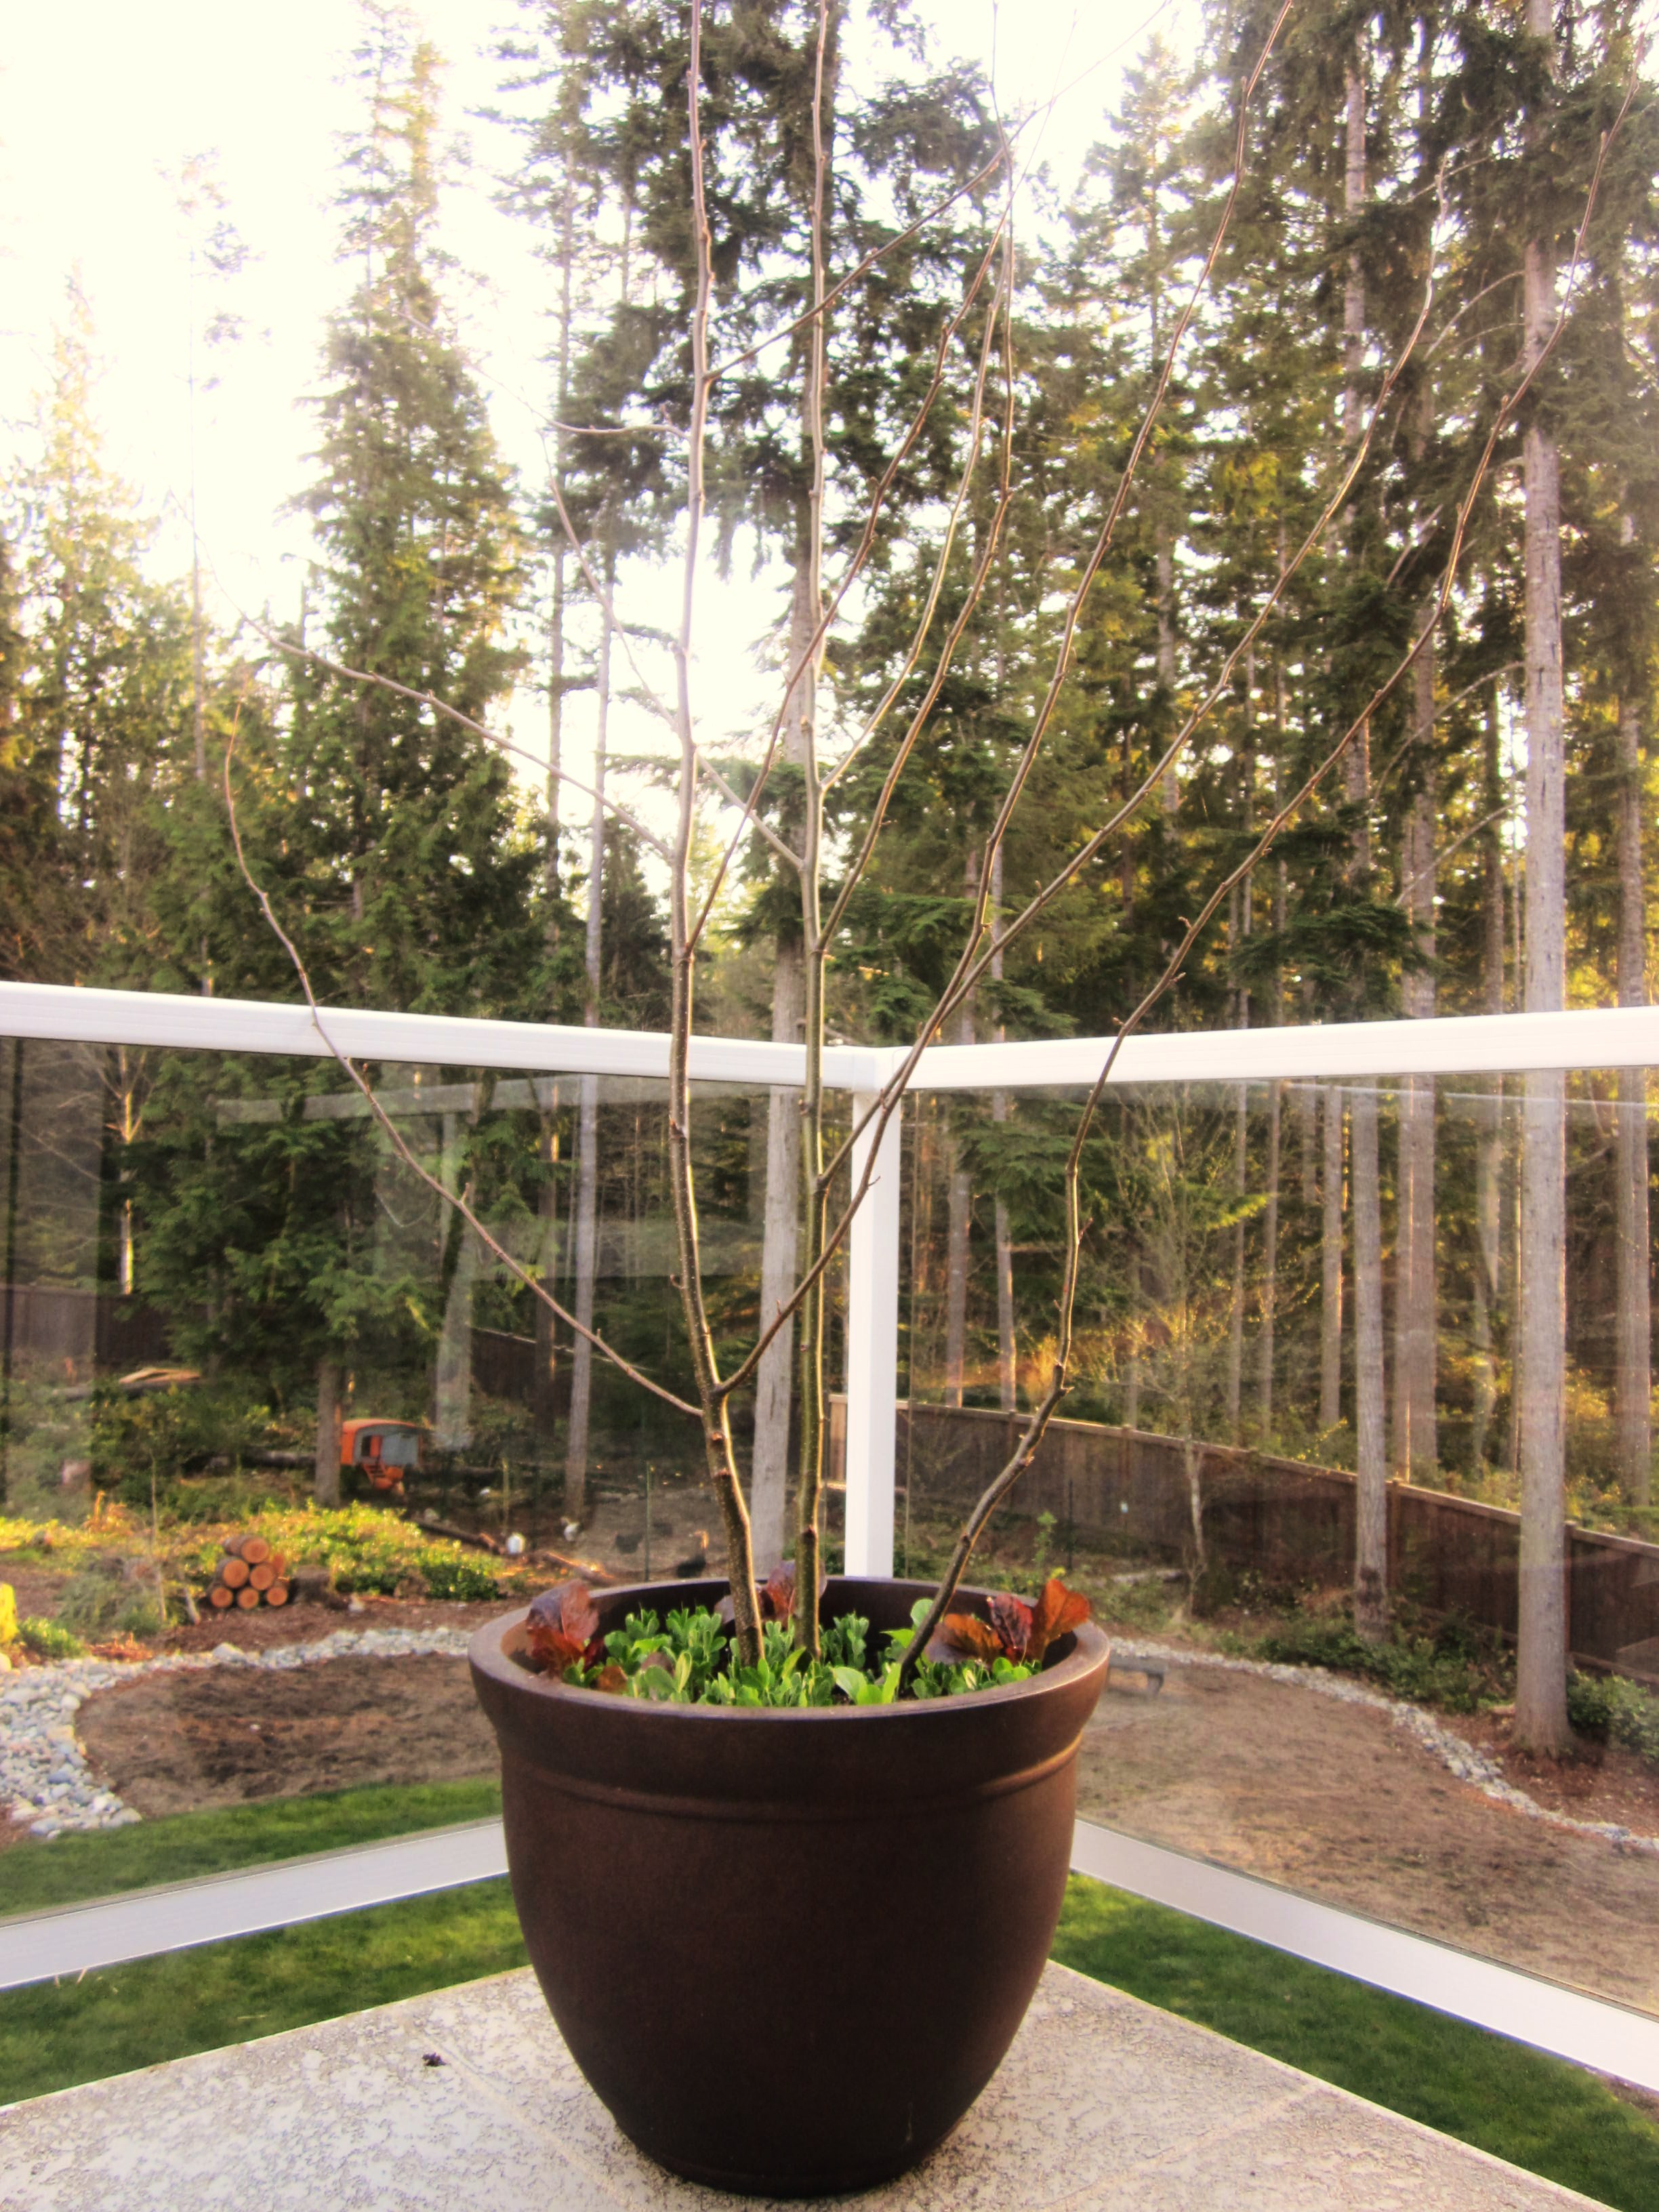 Container Gardening Ideas: Starting a Garden in a Container